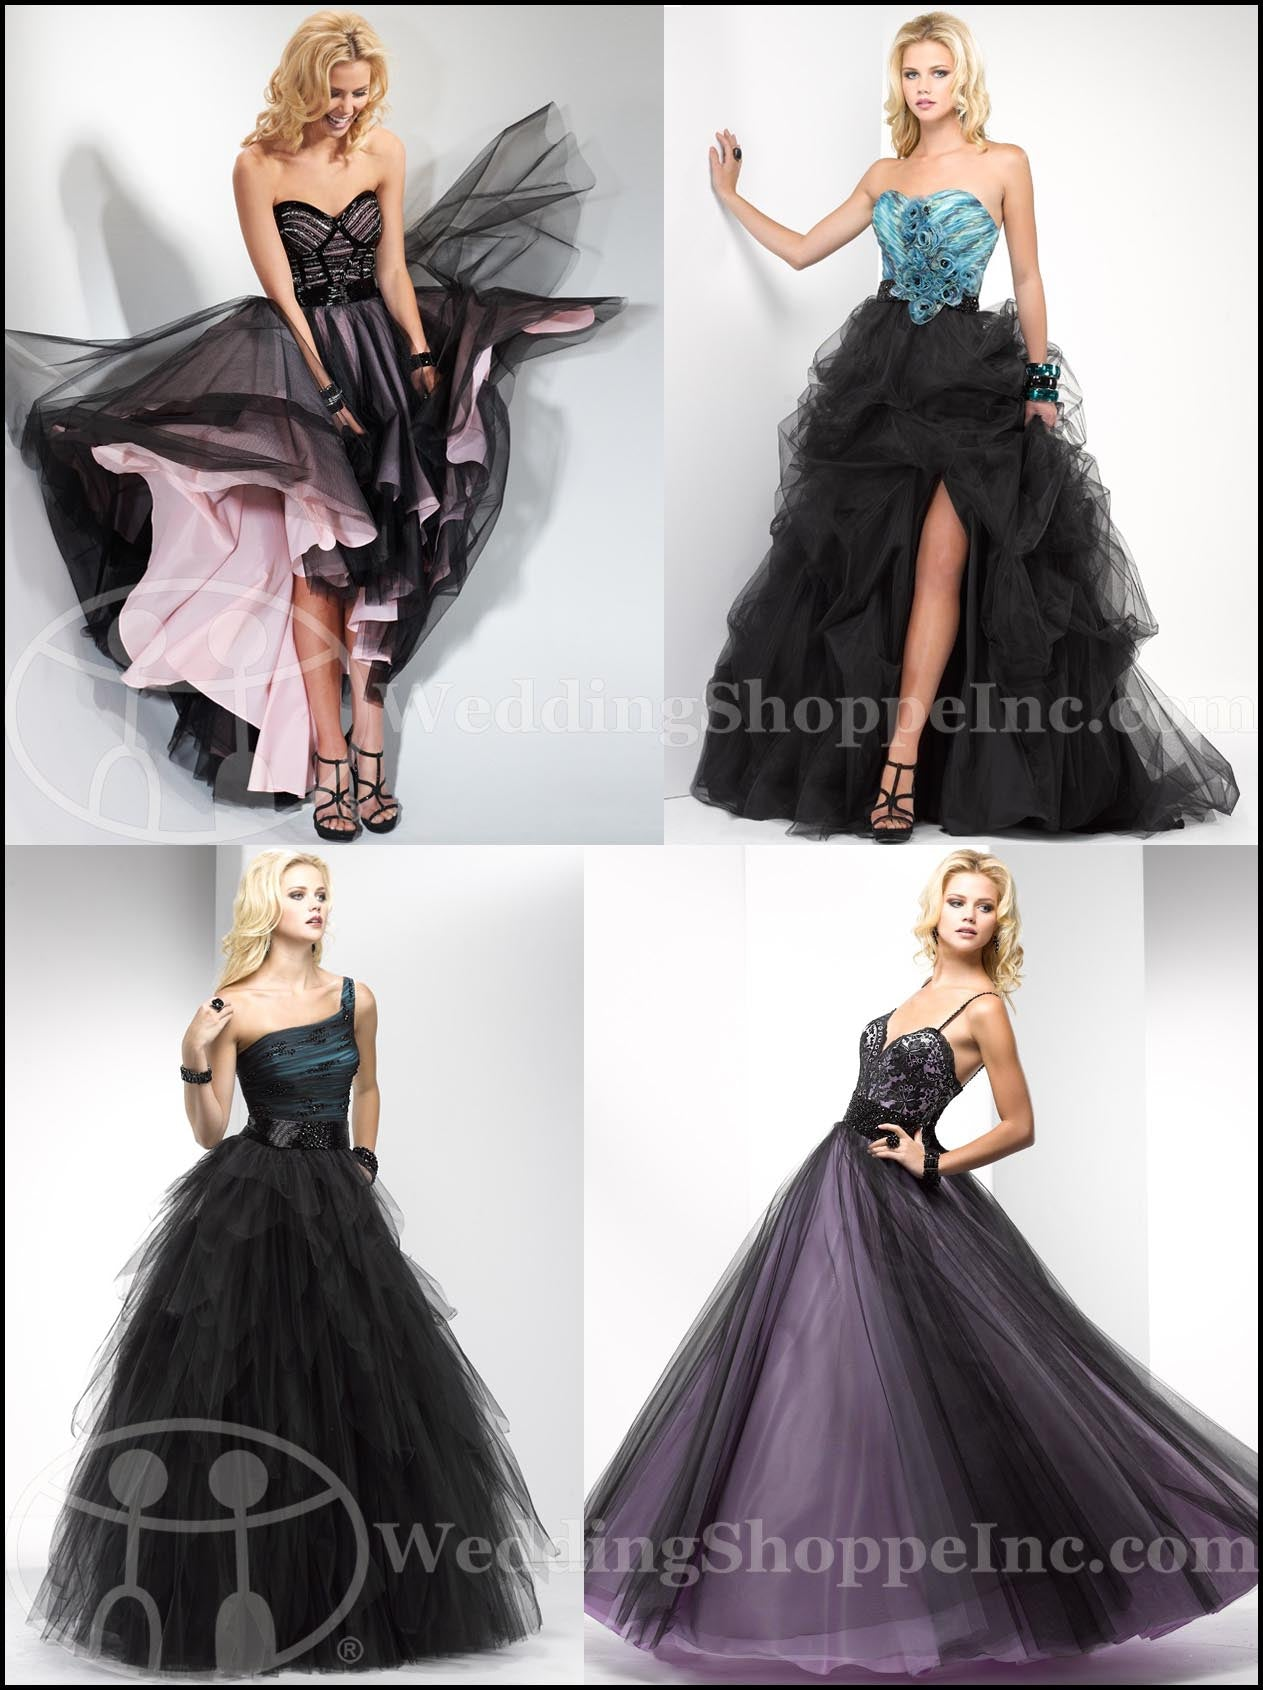 Punk Rock Prom Dresses 2012